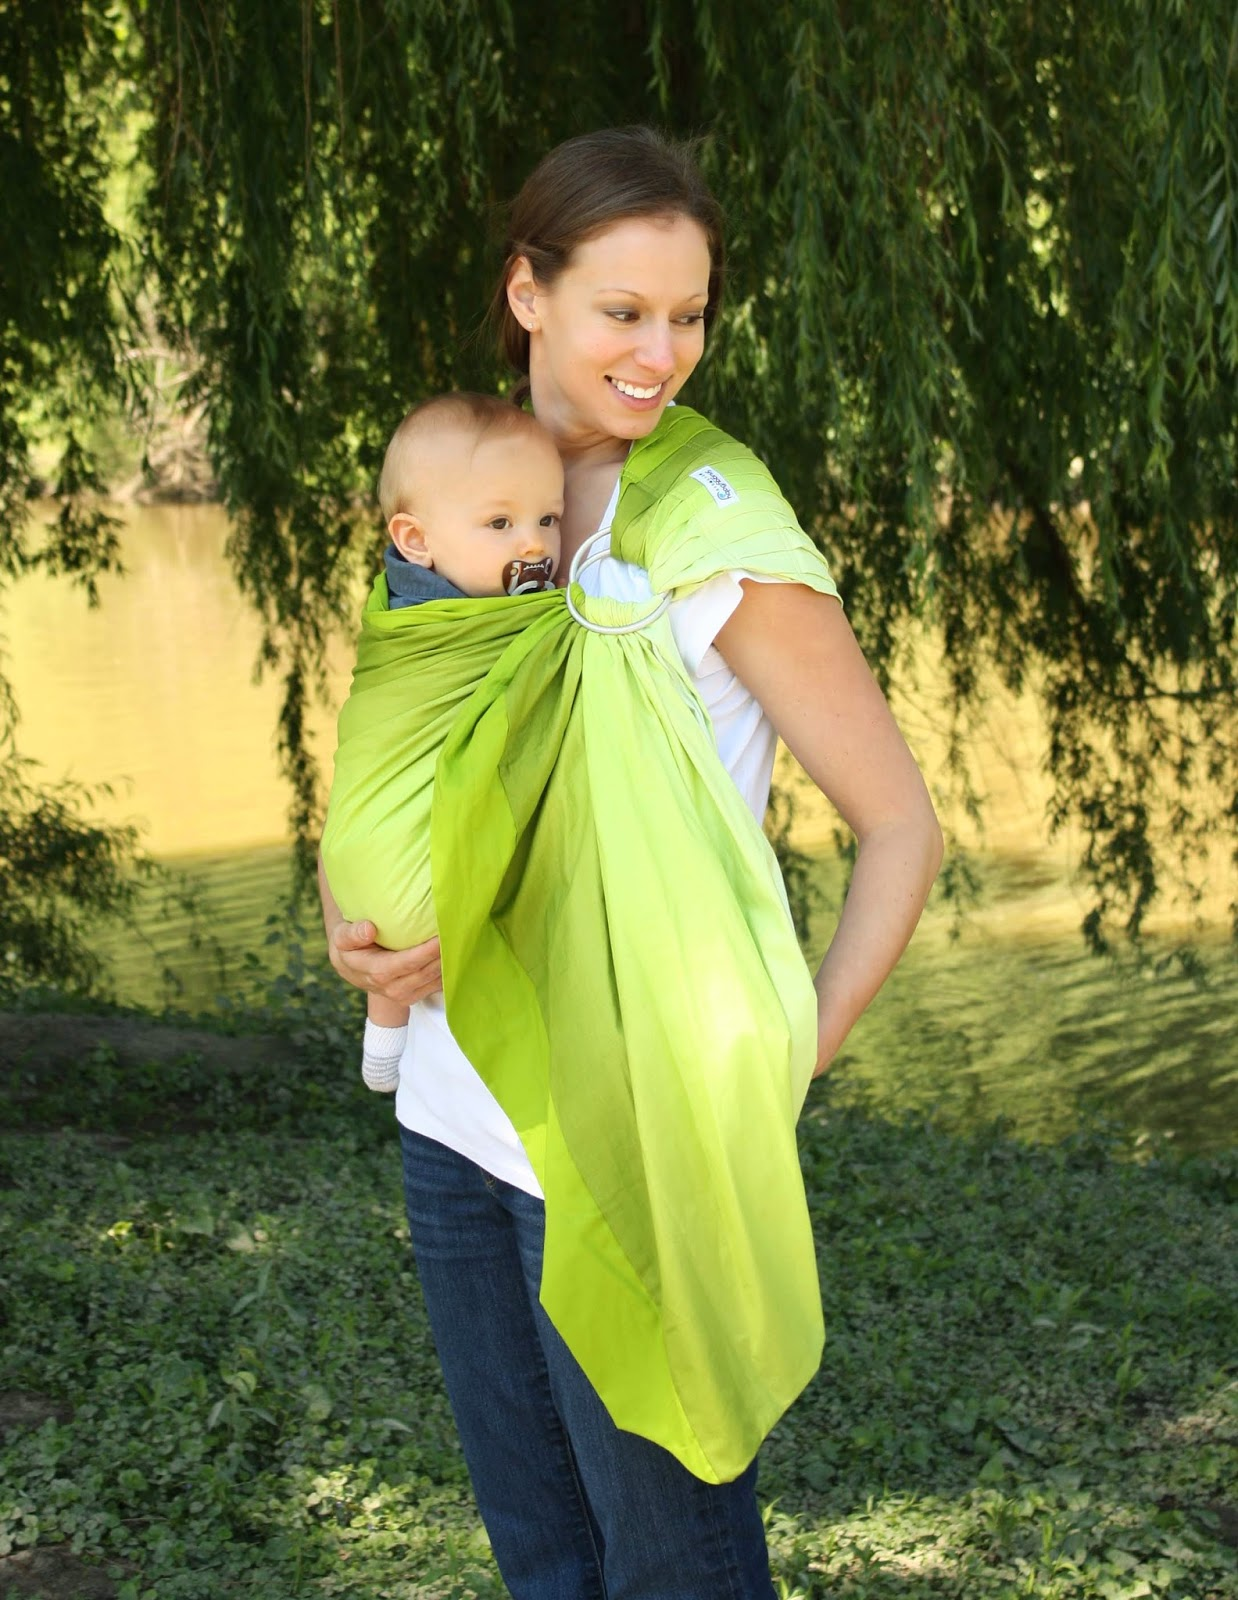 Snuggy Baby Green Ombre Prestige Ring Sling